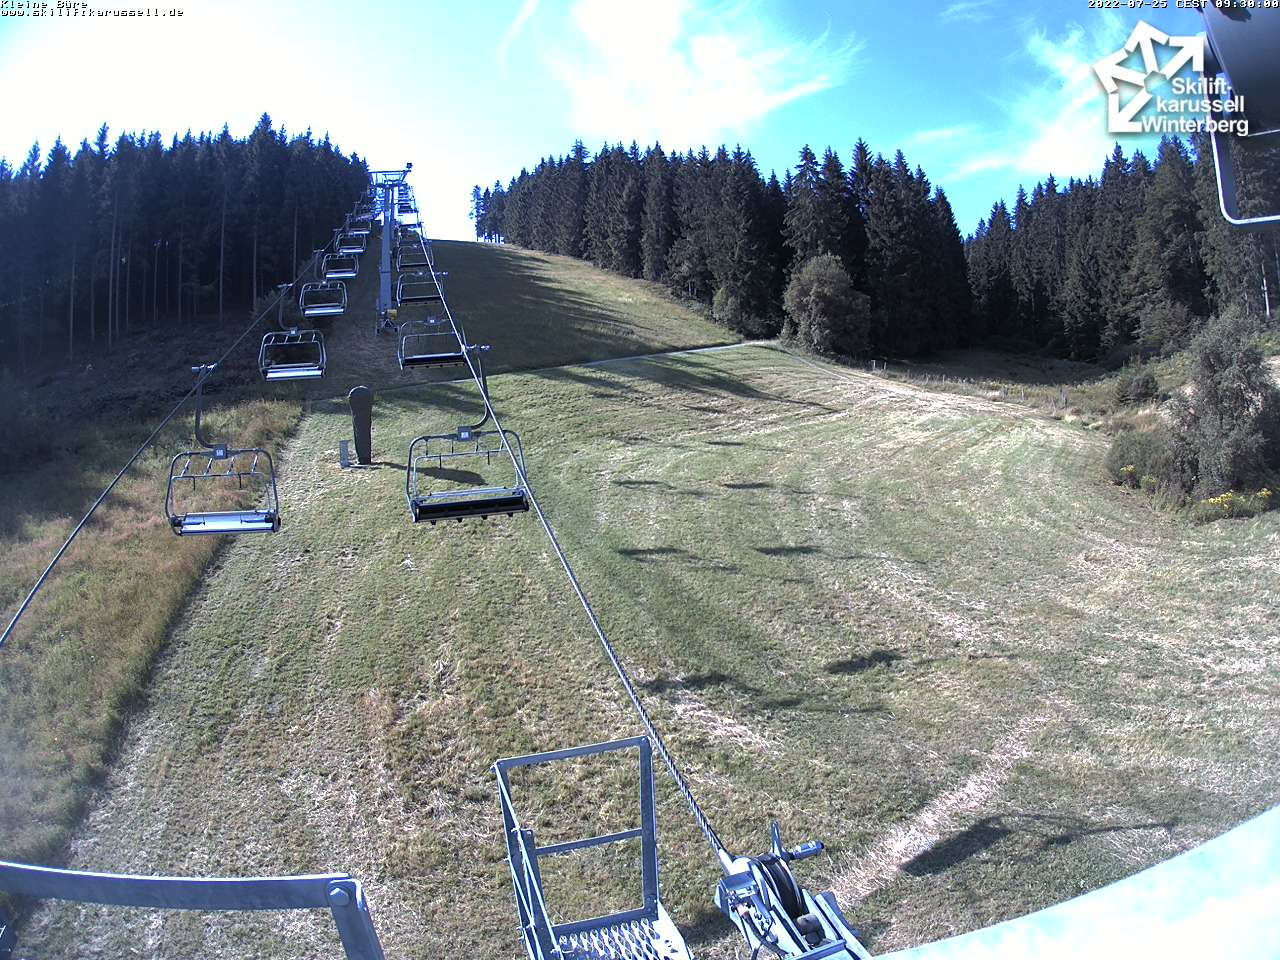 Skiliftkarussell Winterberg - Webcam 10